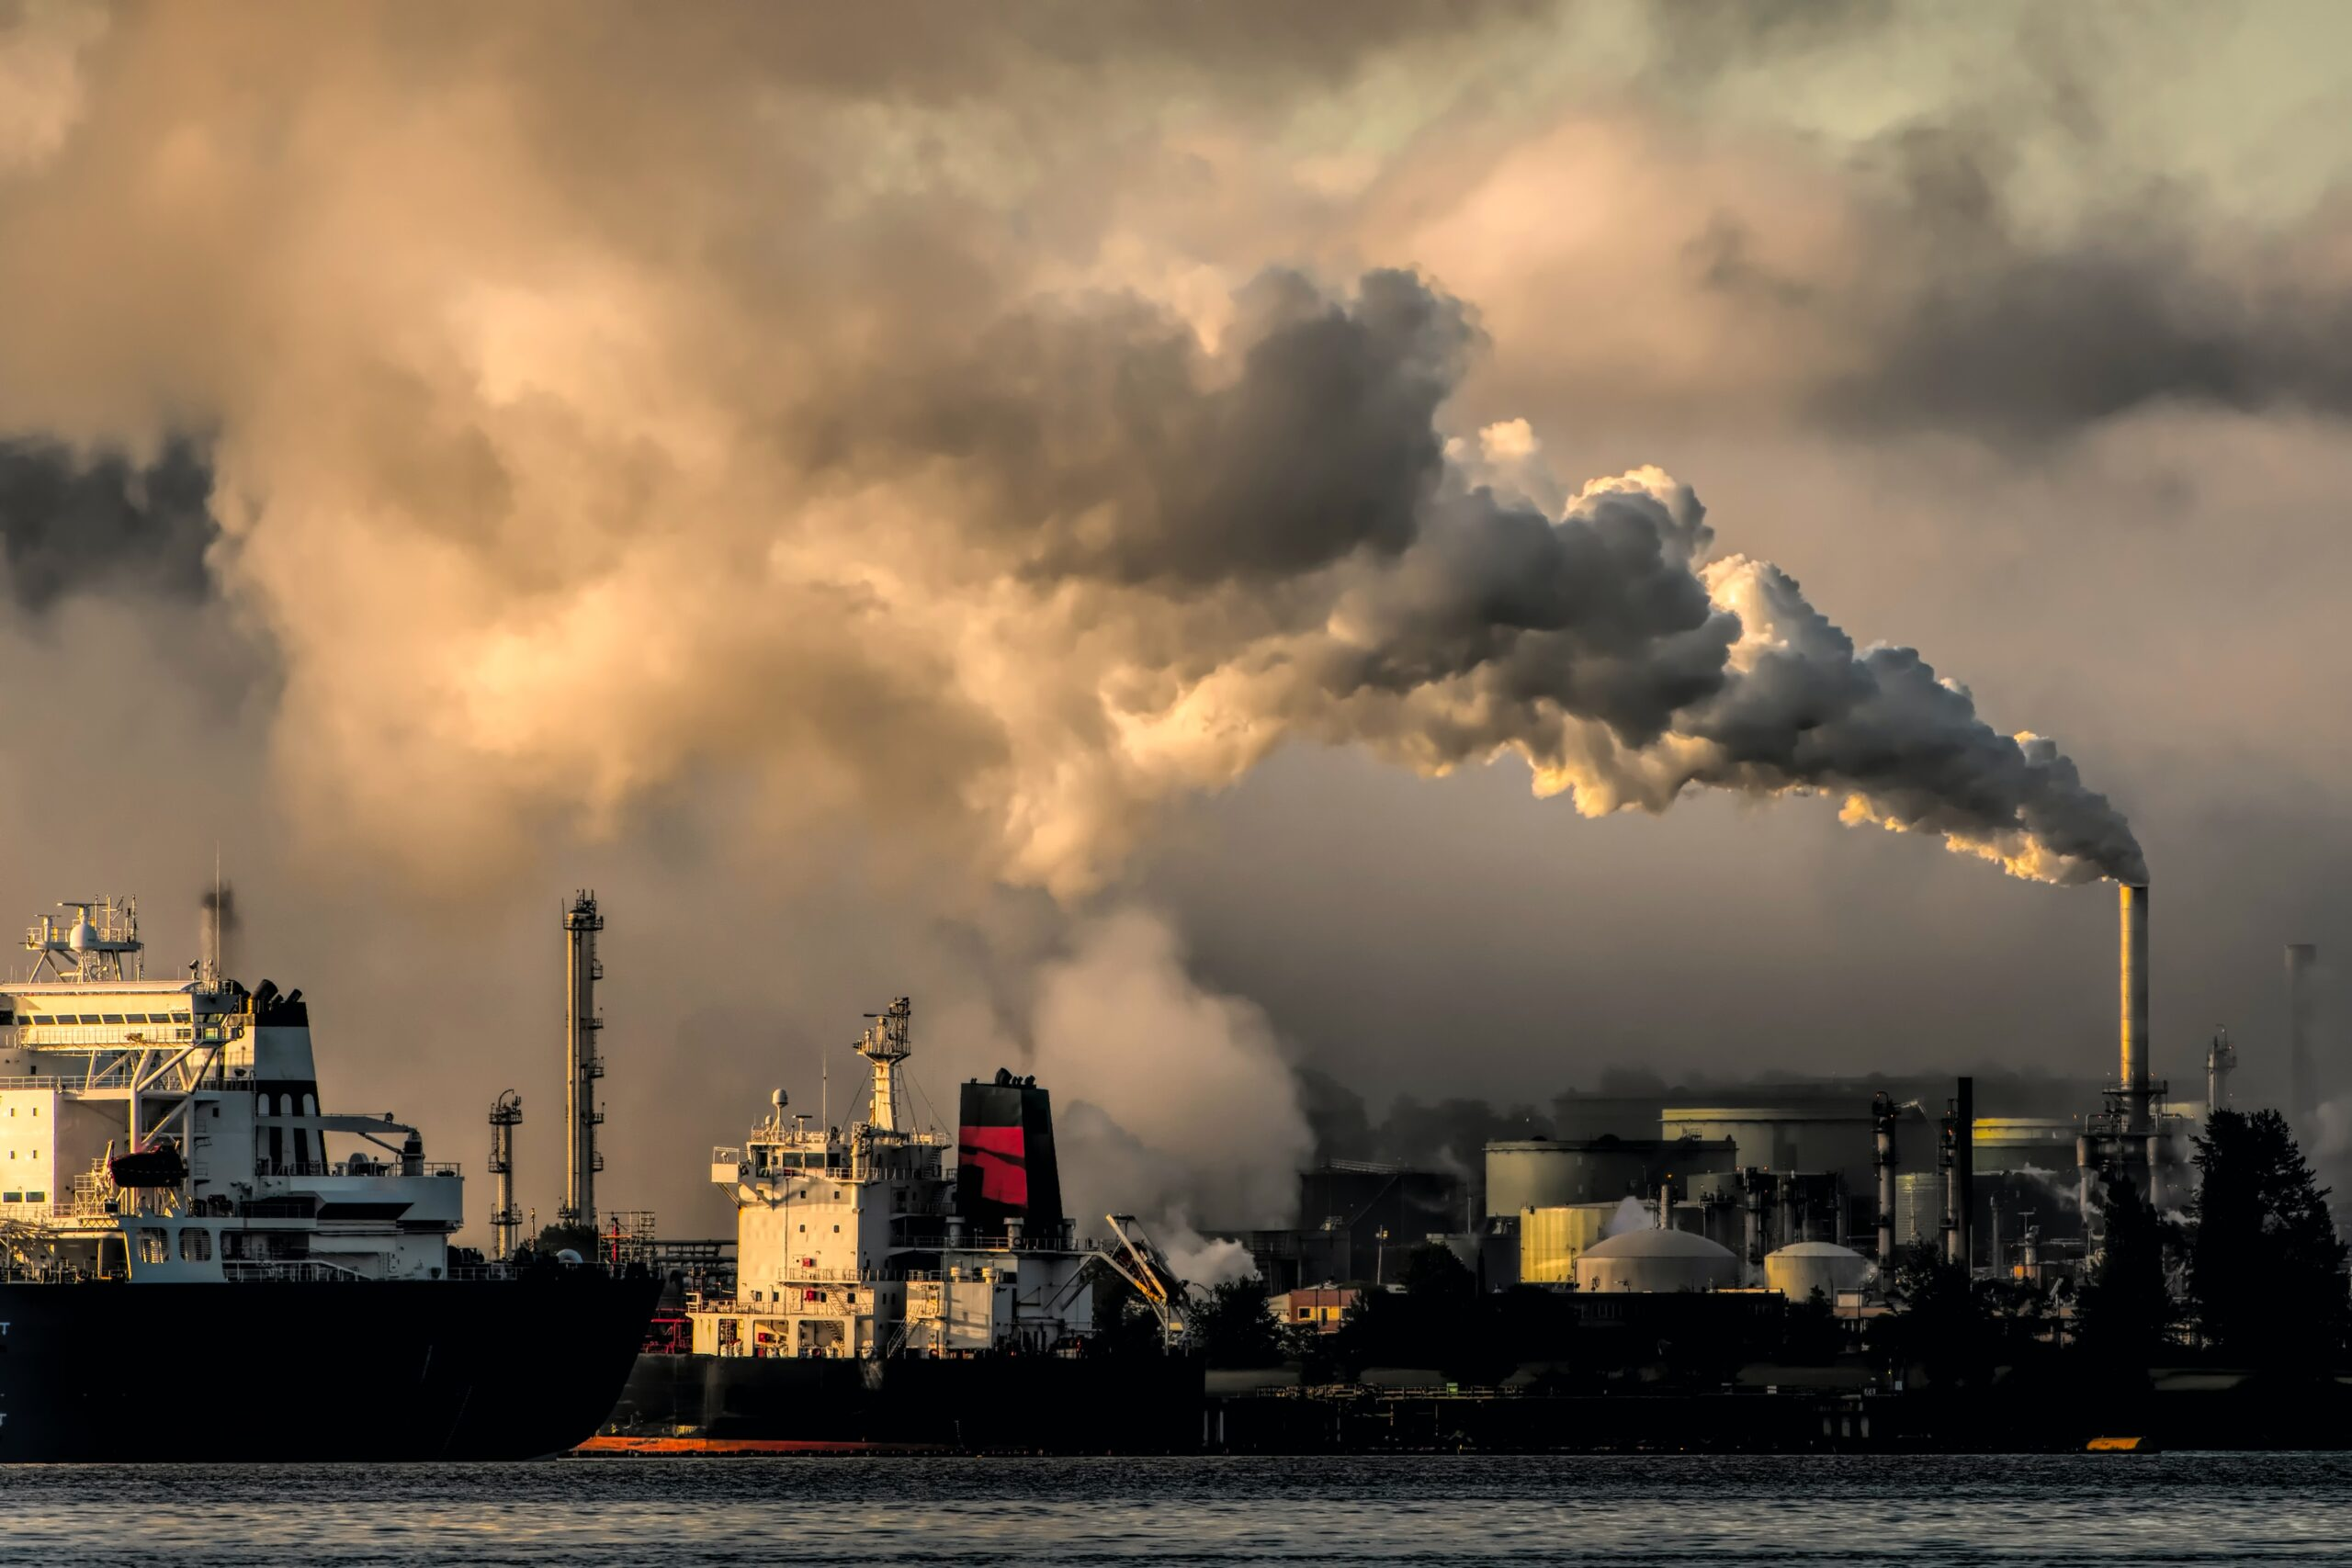 Congress Urged to Cut Fossil Fuel, Plastic, and Petrochemical Budget by 50%